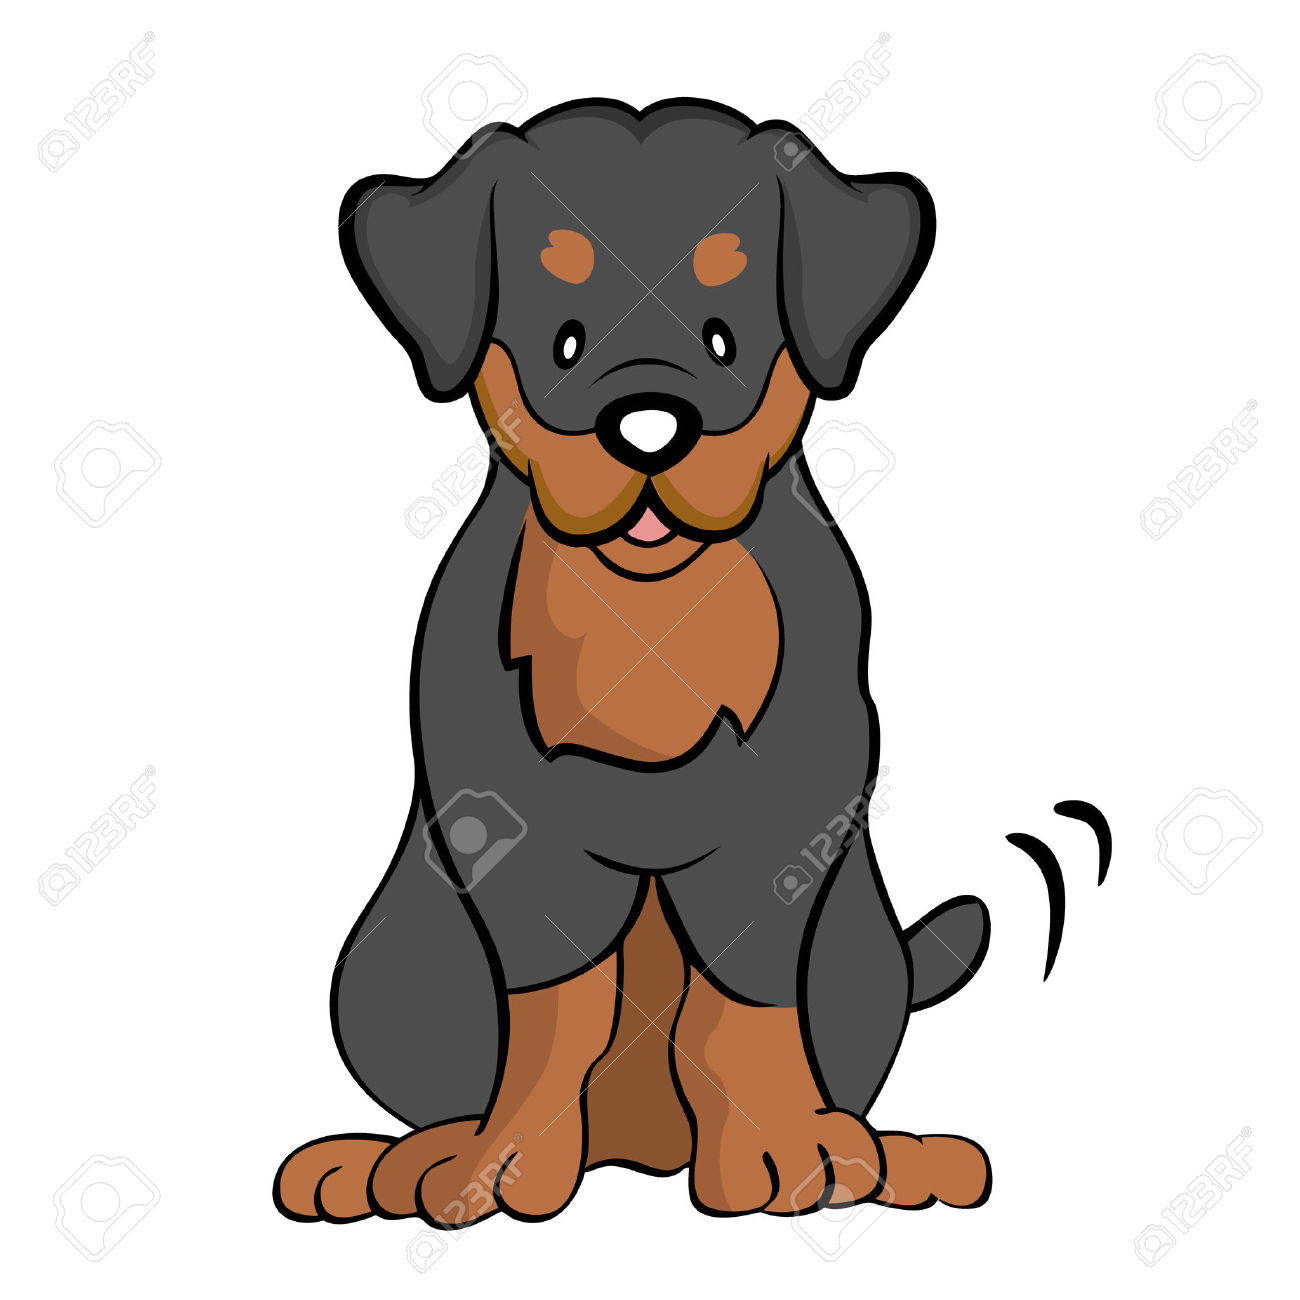 Rottweiler clipart #8, Download drawings